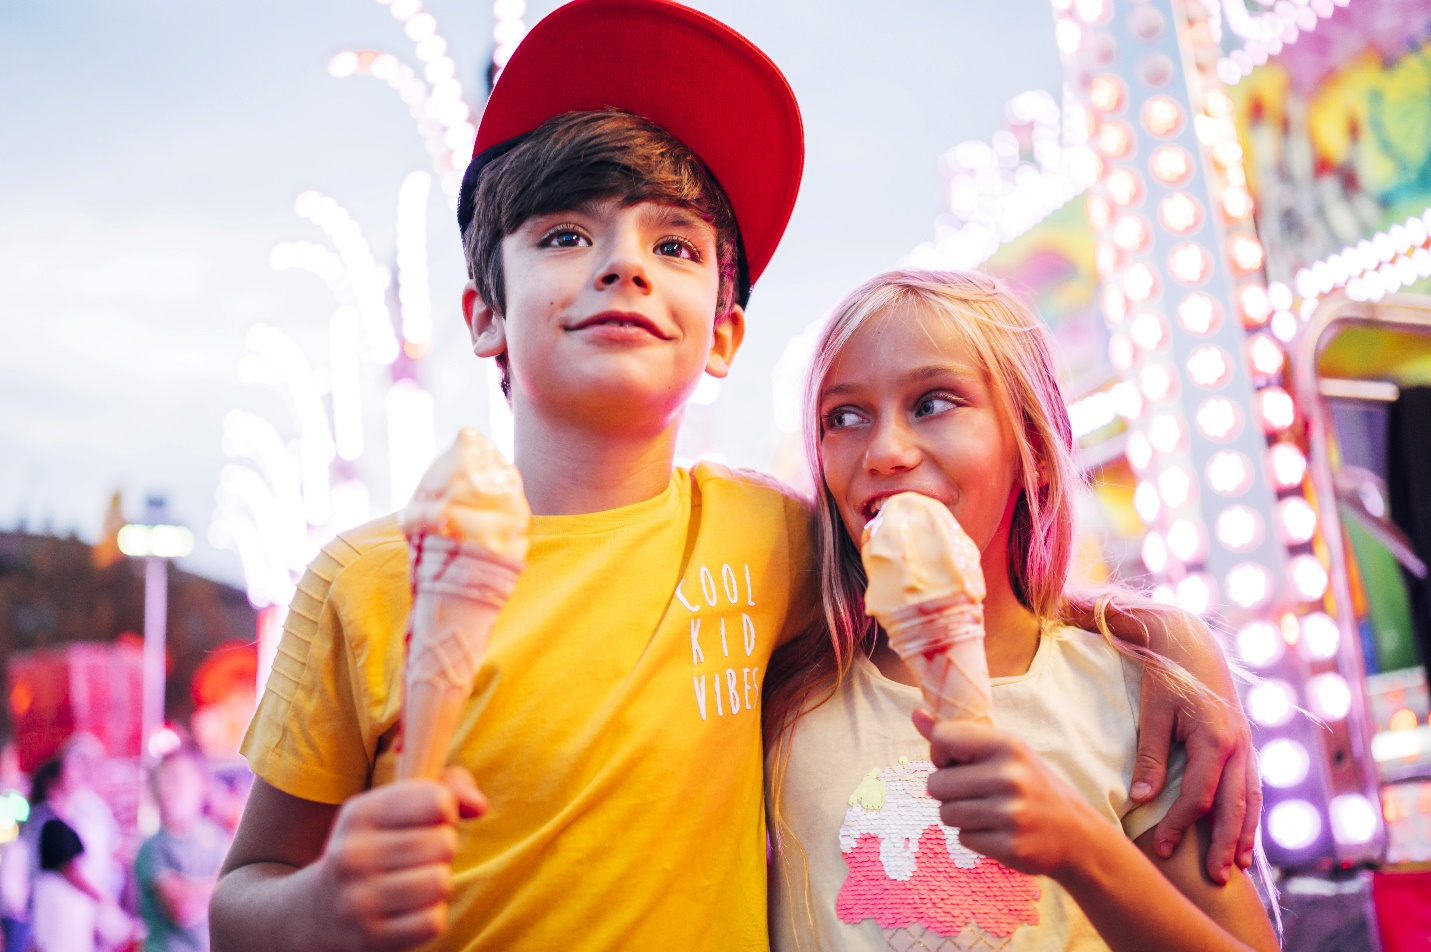 Smiling girl and boy walking eating ice cream